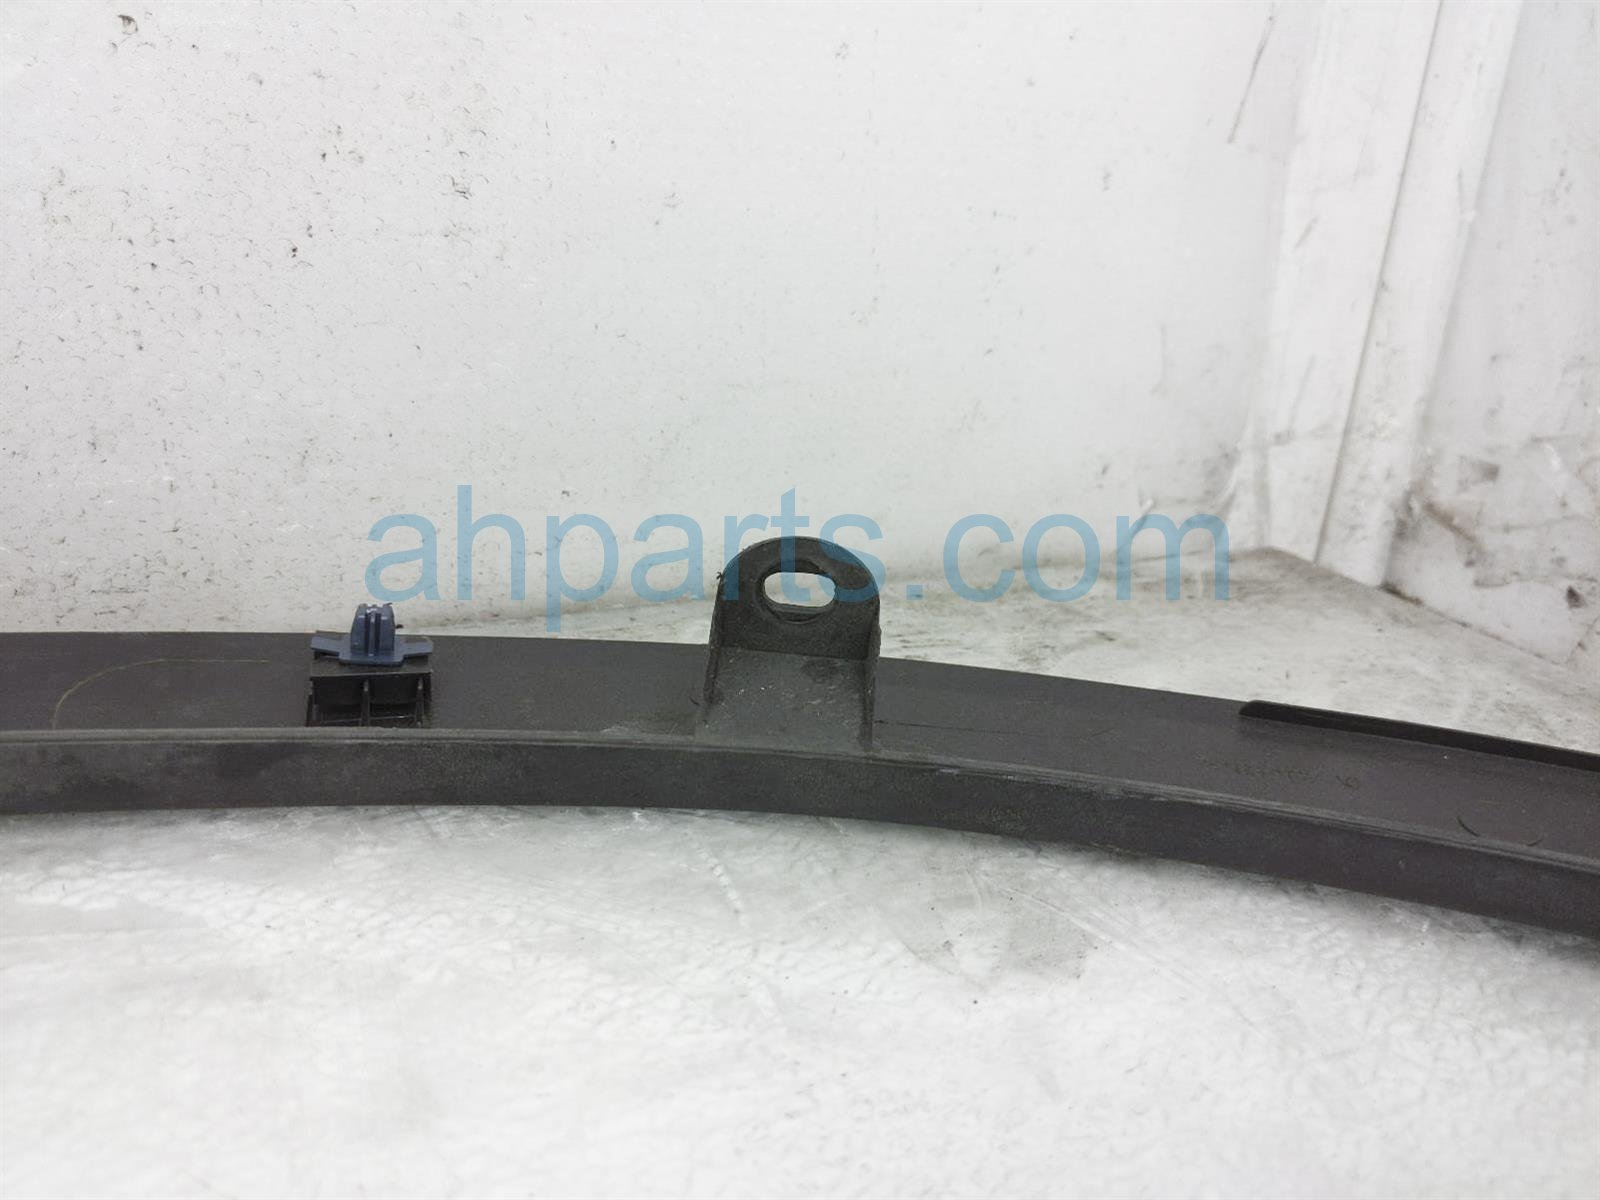 Sold 2019 Honda Pilot Driver Front Fender Flare   Black 74165 TG7 A00 Replacement